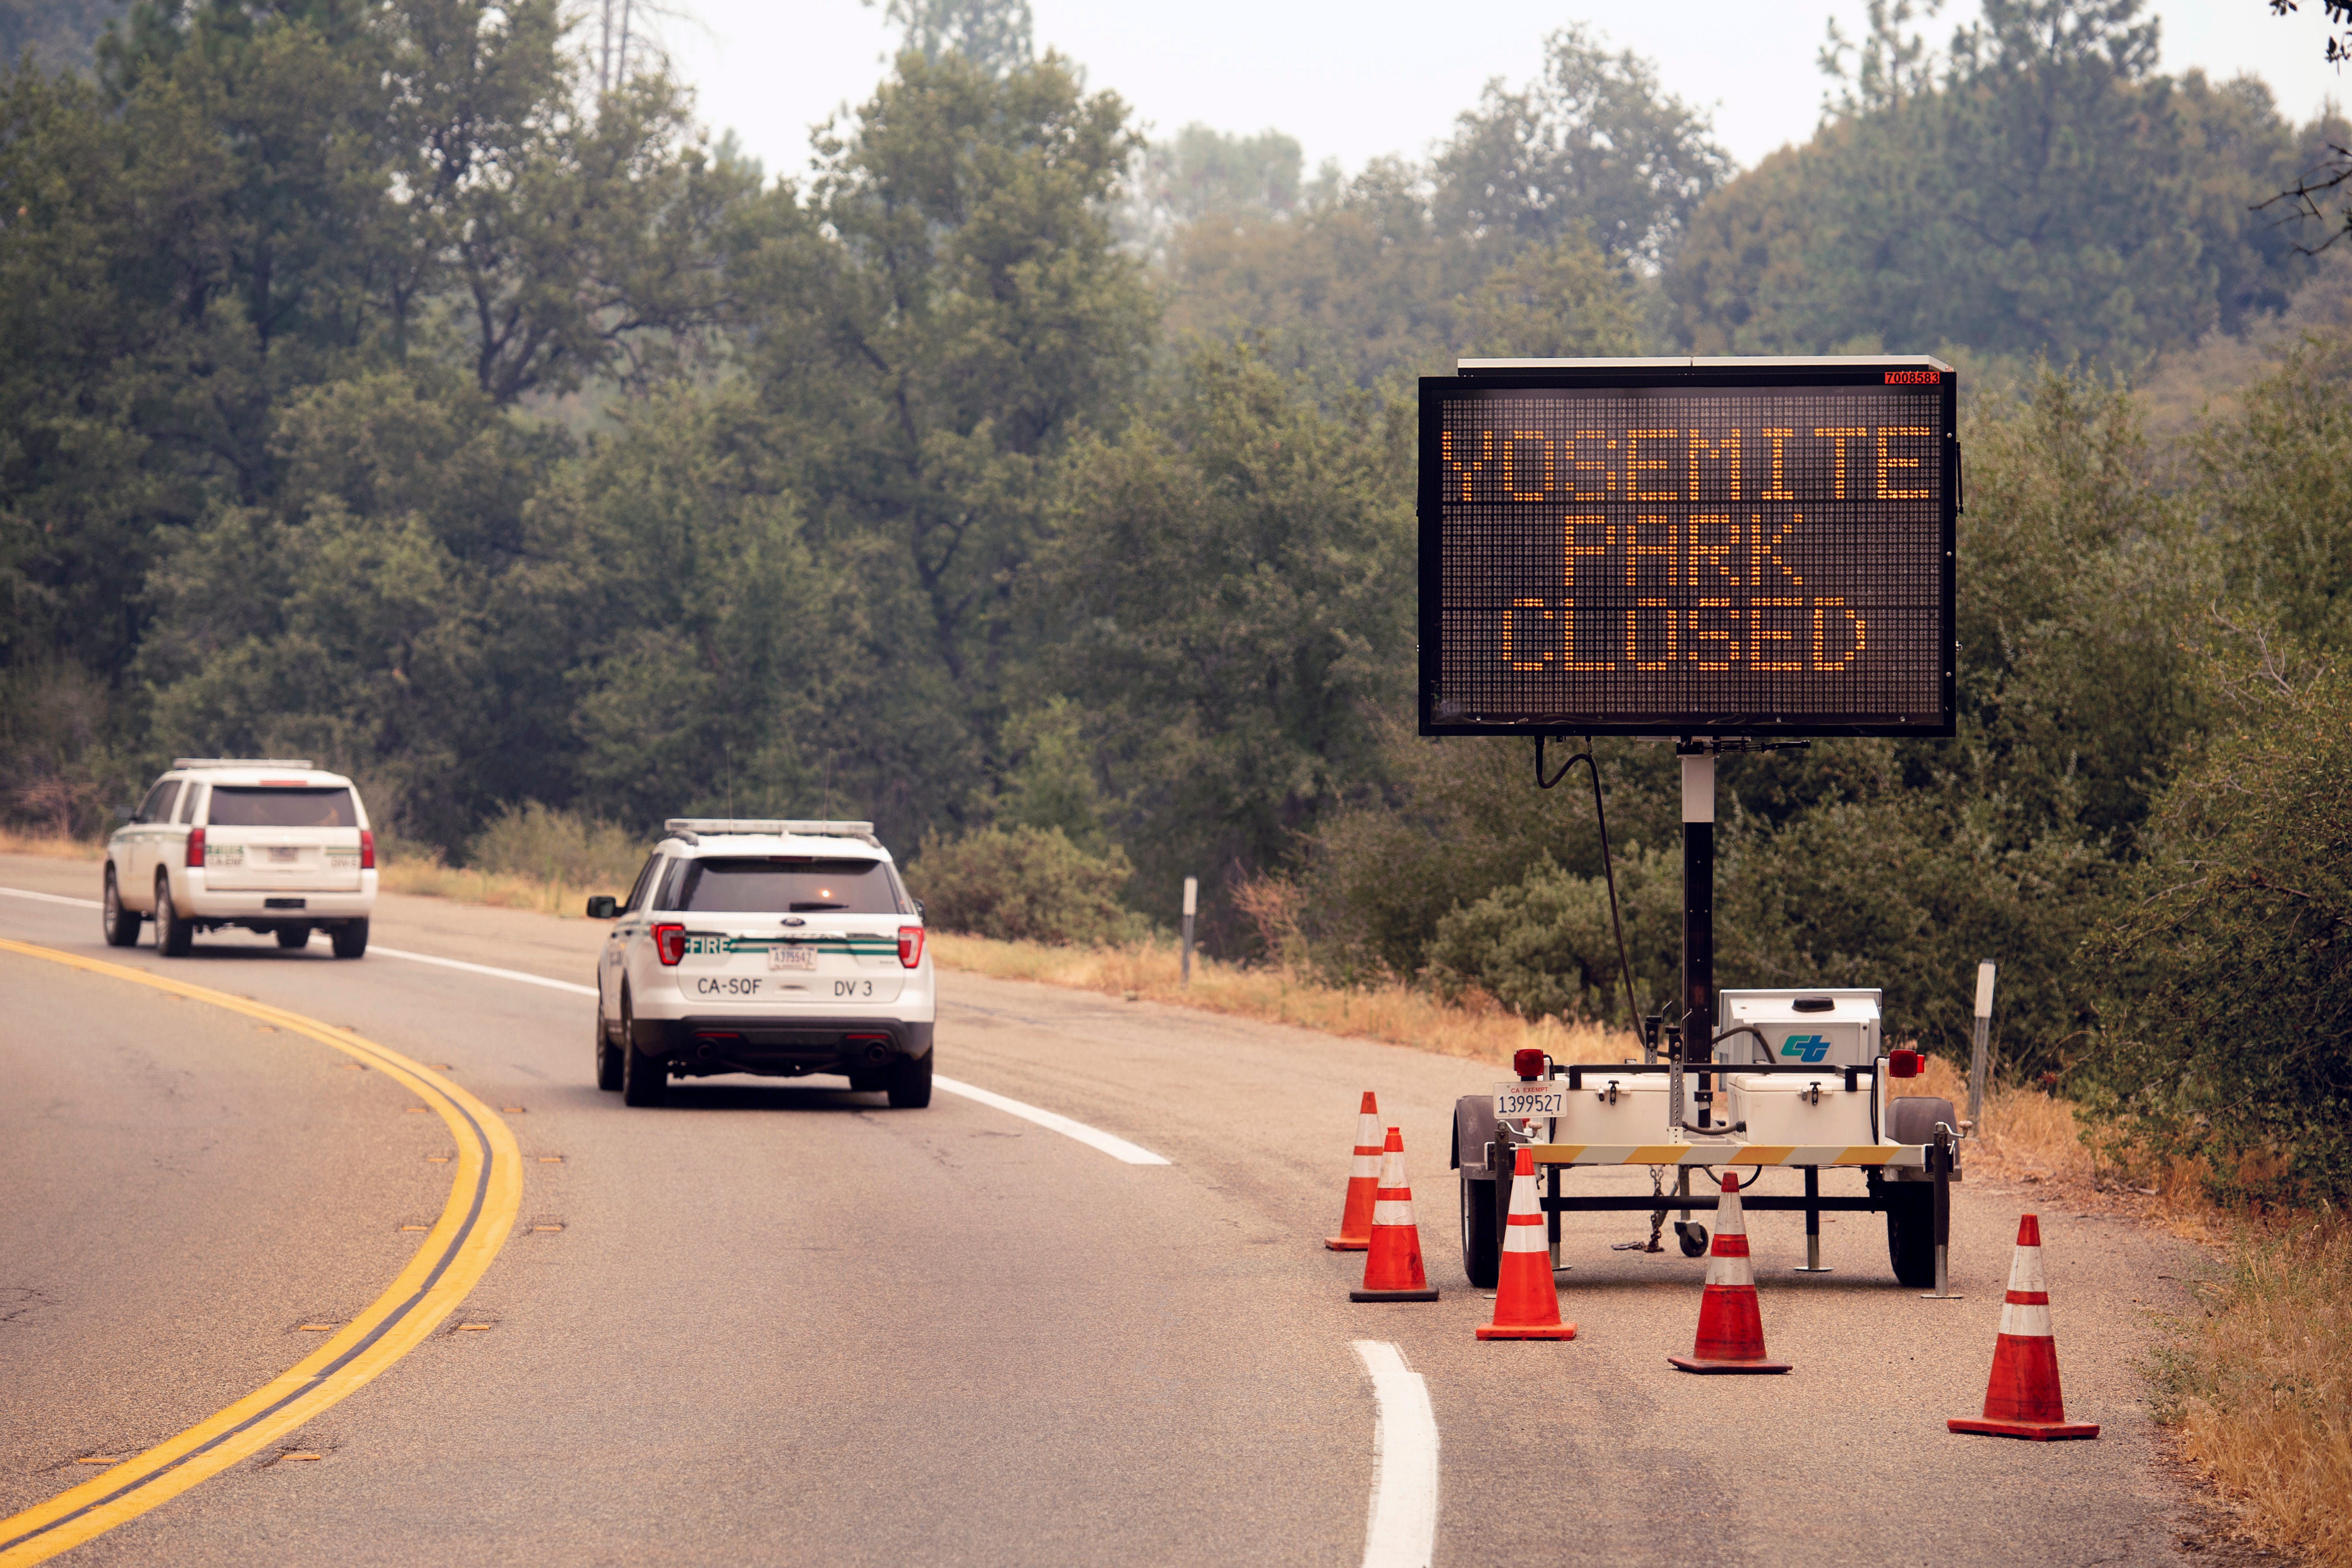 After weeks of smoke and fire, Yosemite Valley reopening at Yosemite National Park